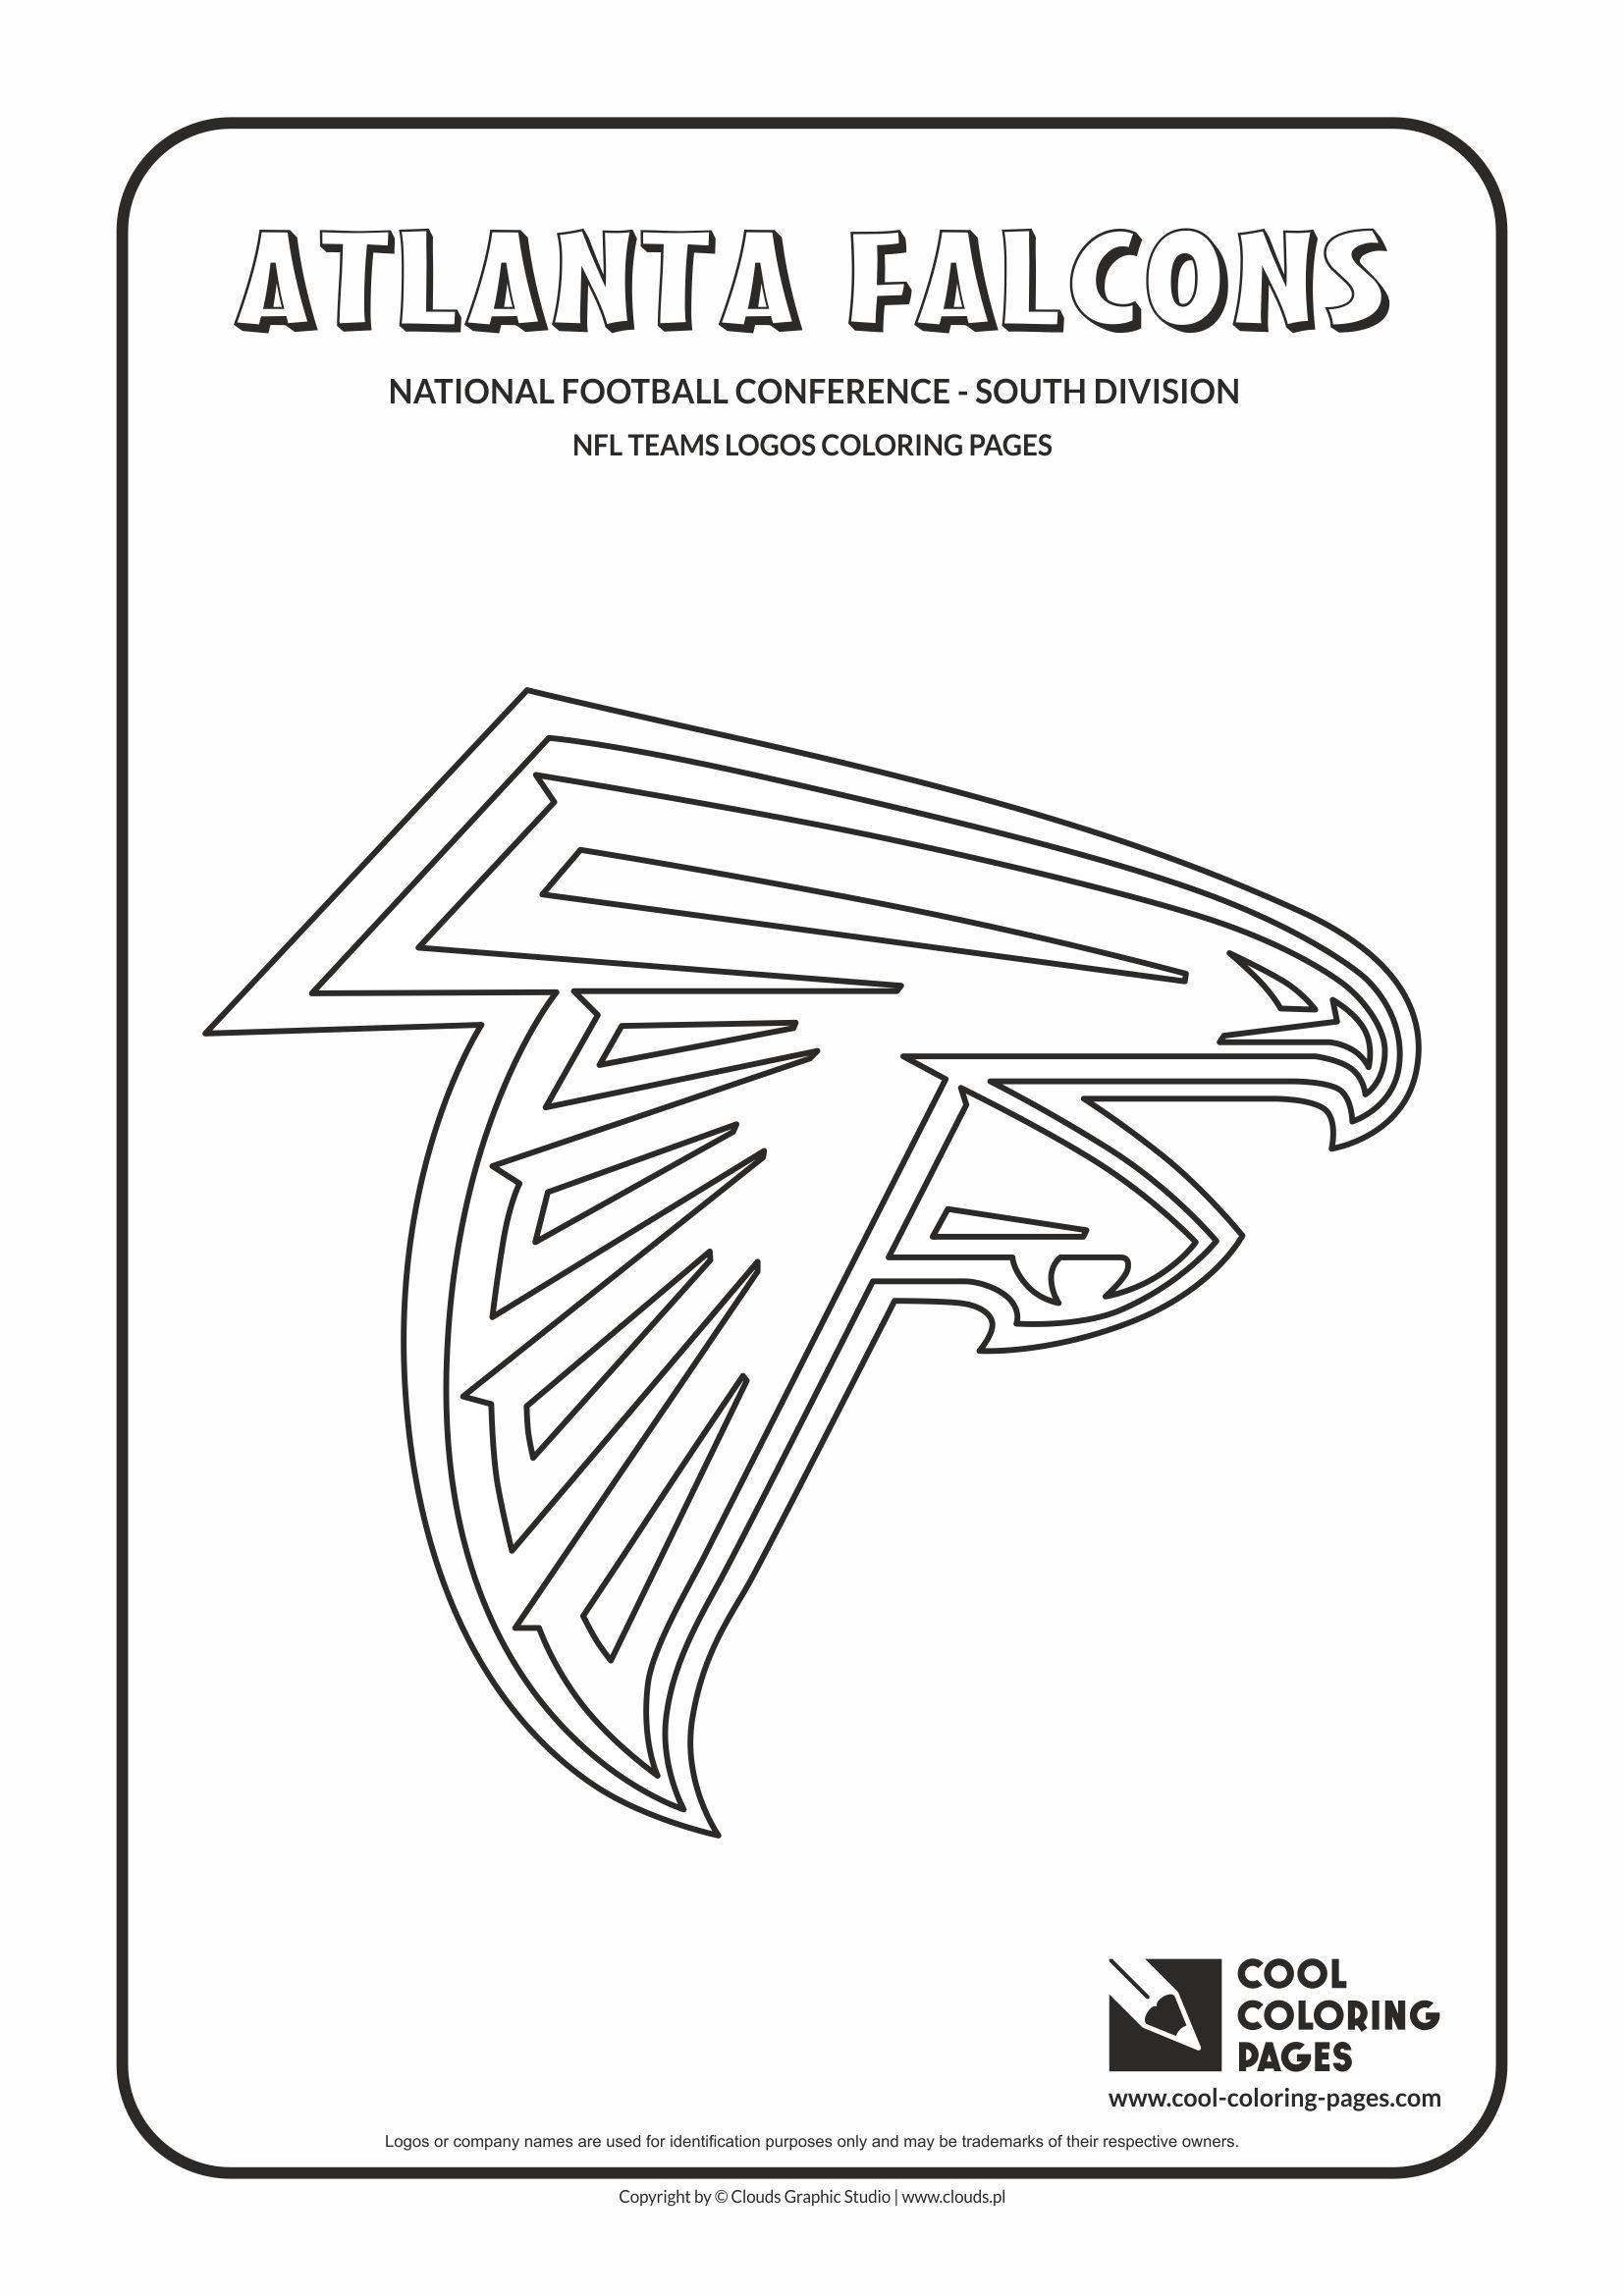 Cool Coloring Pages Nfl American Football Clubs Logos National Football Conference East Division Football Coloring Pages Atlanta Falcons Nfl Teams Logos